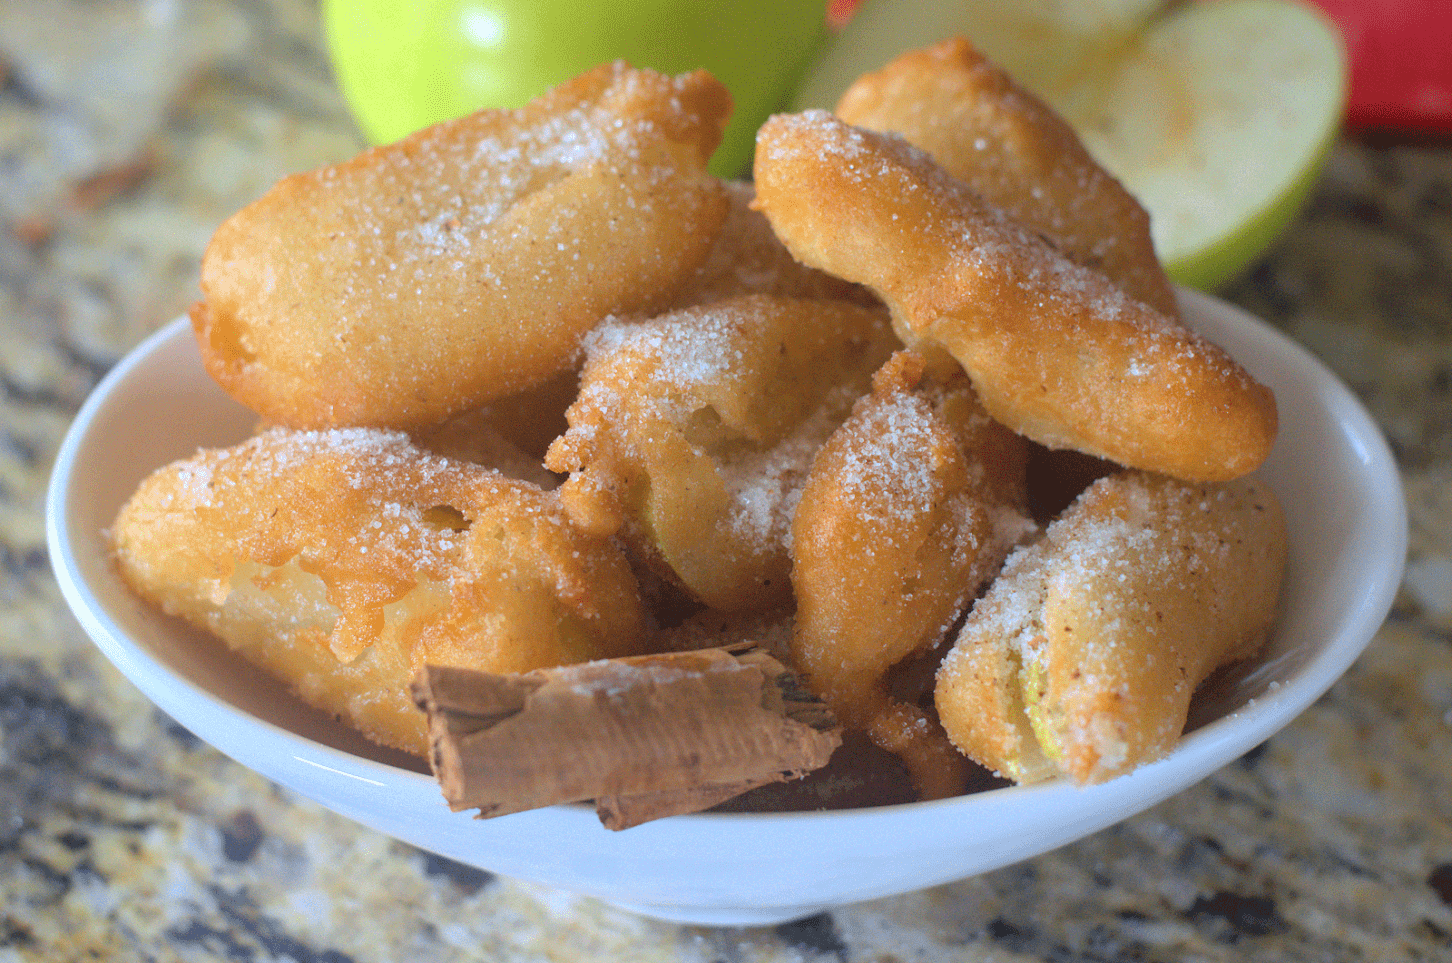 Looking for a rich treat to make with all those apples from the orchard? These deep fried apples are a great snack, side or breakfast treat.